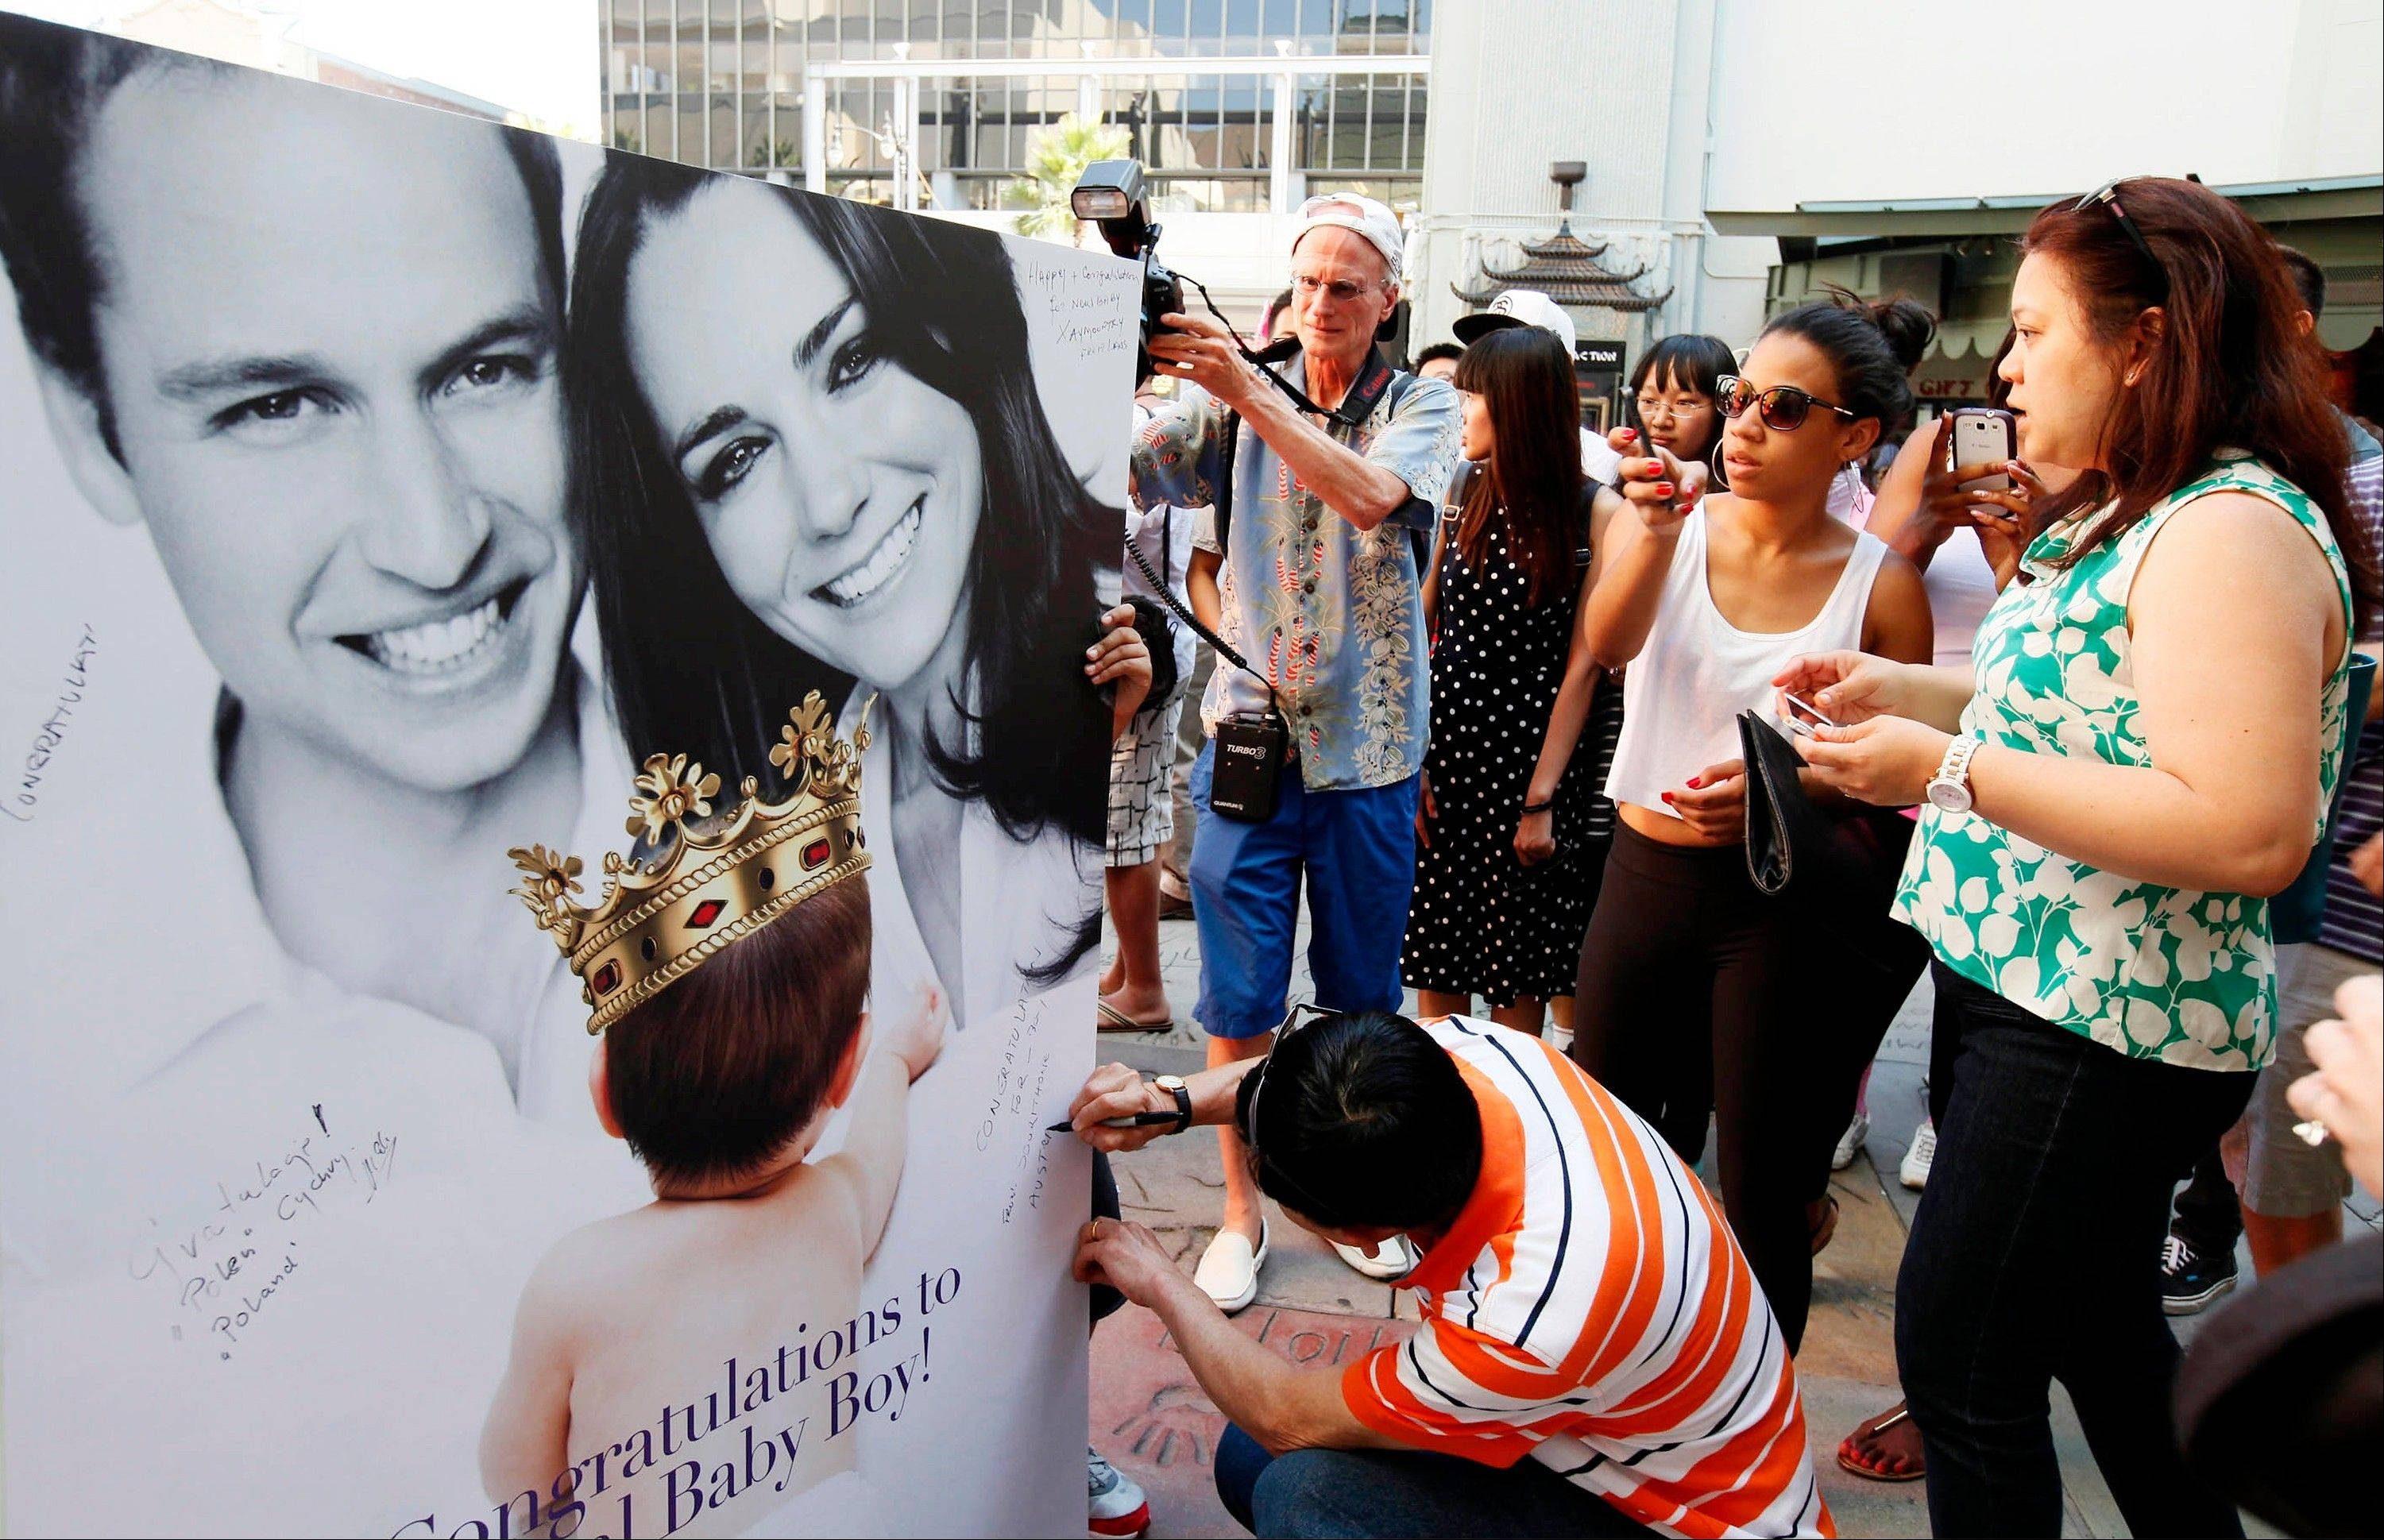 Fans and tourists sign a giant card congratulating Britain's Prince William and Kate, Duchess of Cambridge, on the birth of their baby boy Tuesday, July 23, 2013 outside the TCL Chinese Theatre in Hollywood.